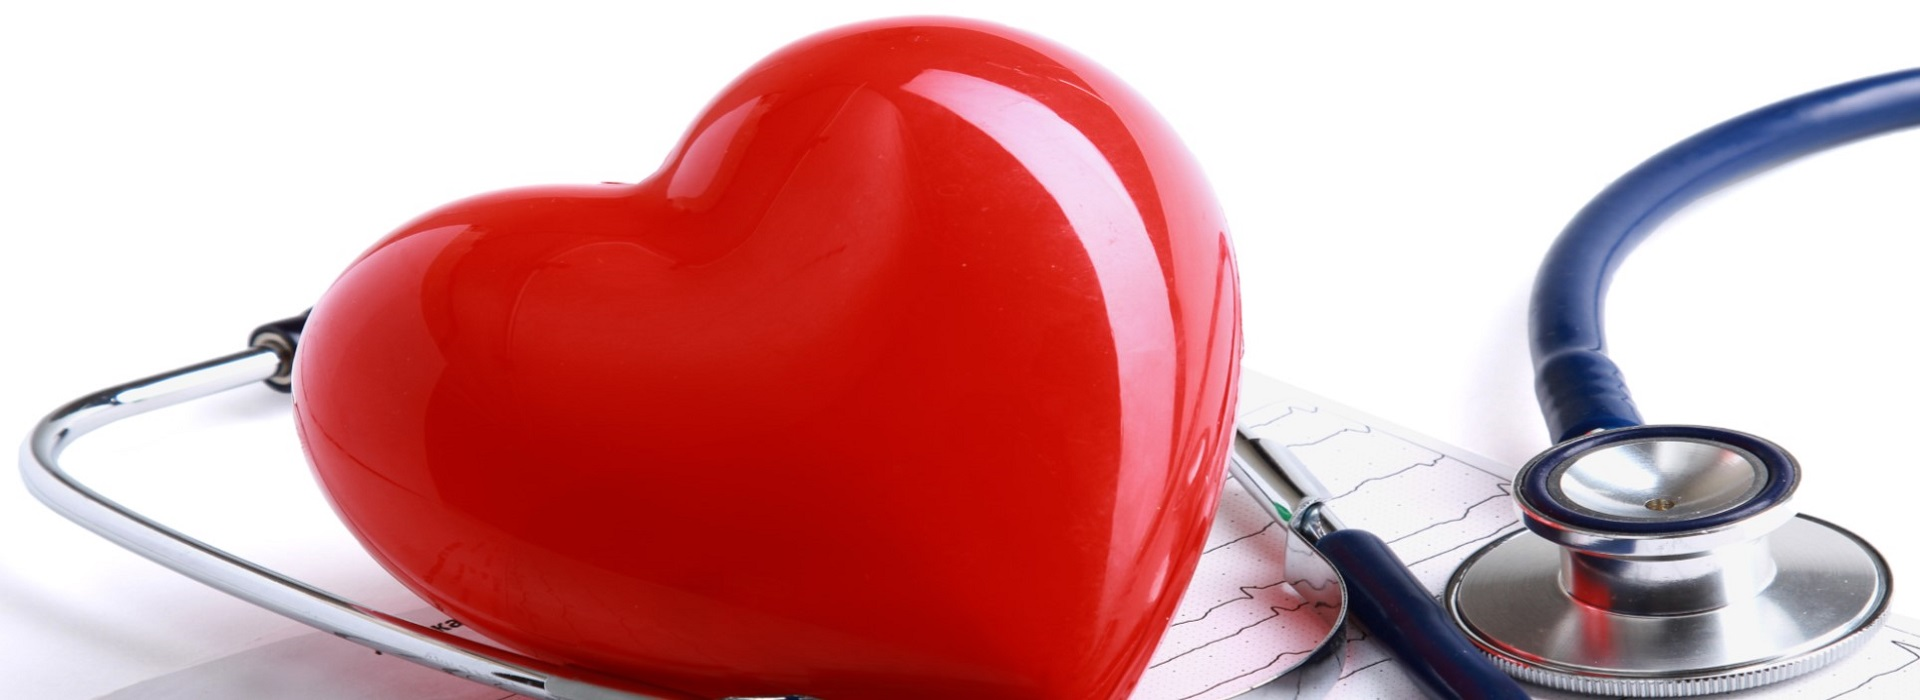 big red plastic heart with stethoscope and printed electrocardiograph